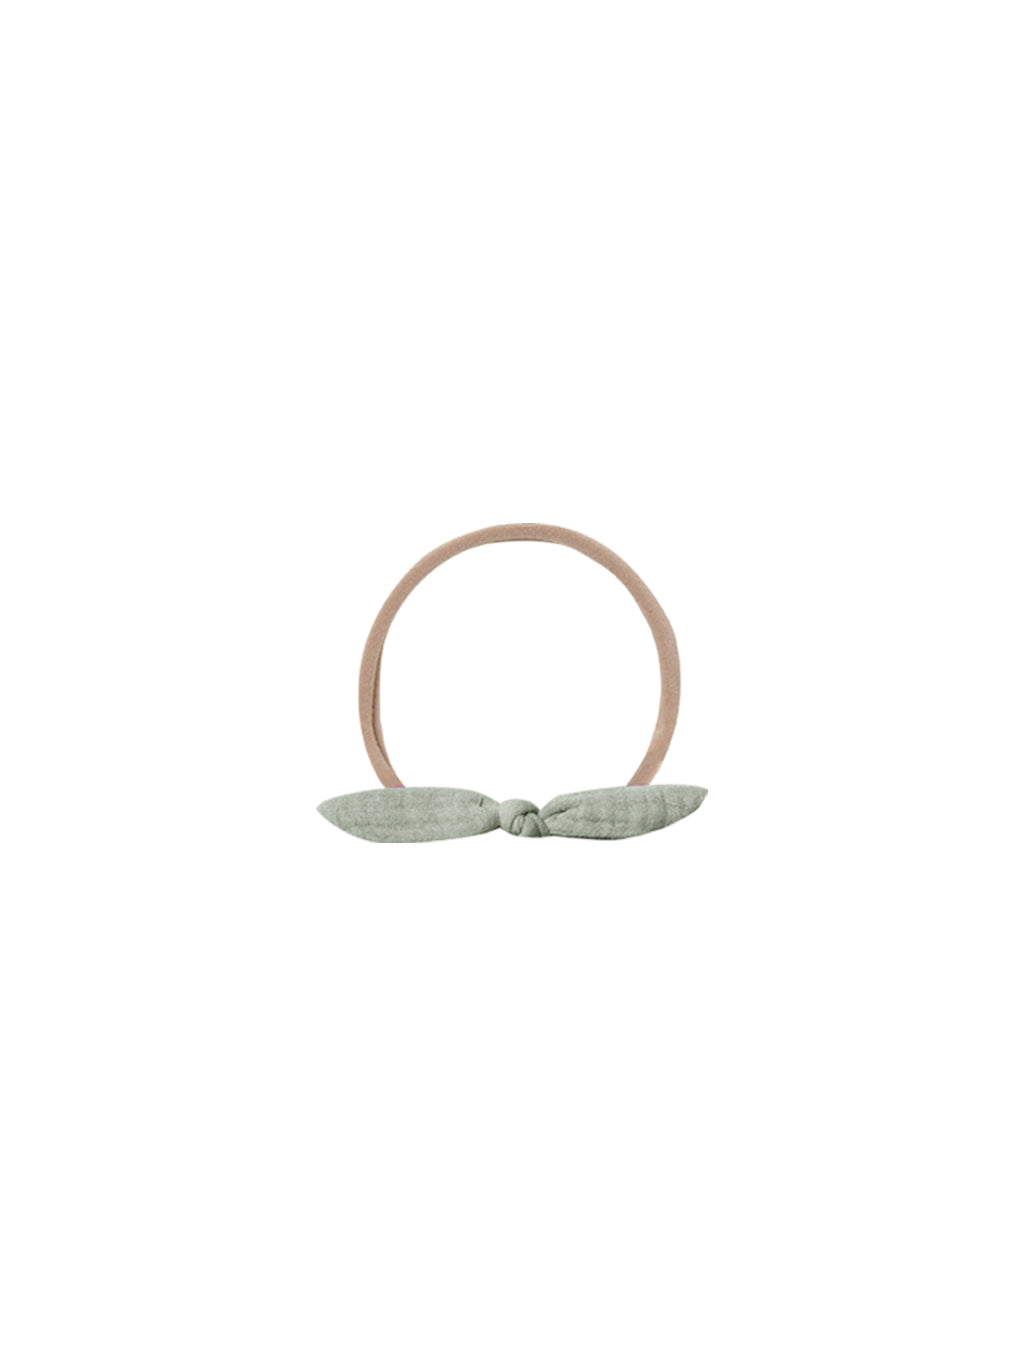 Quincy Mae - Little Knot Headband (Sage)